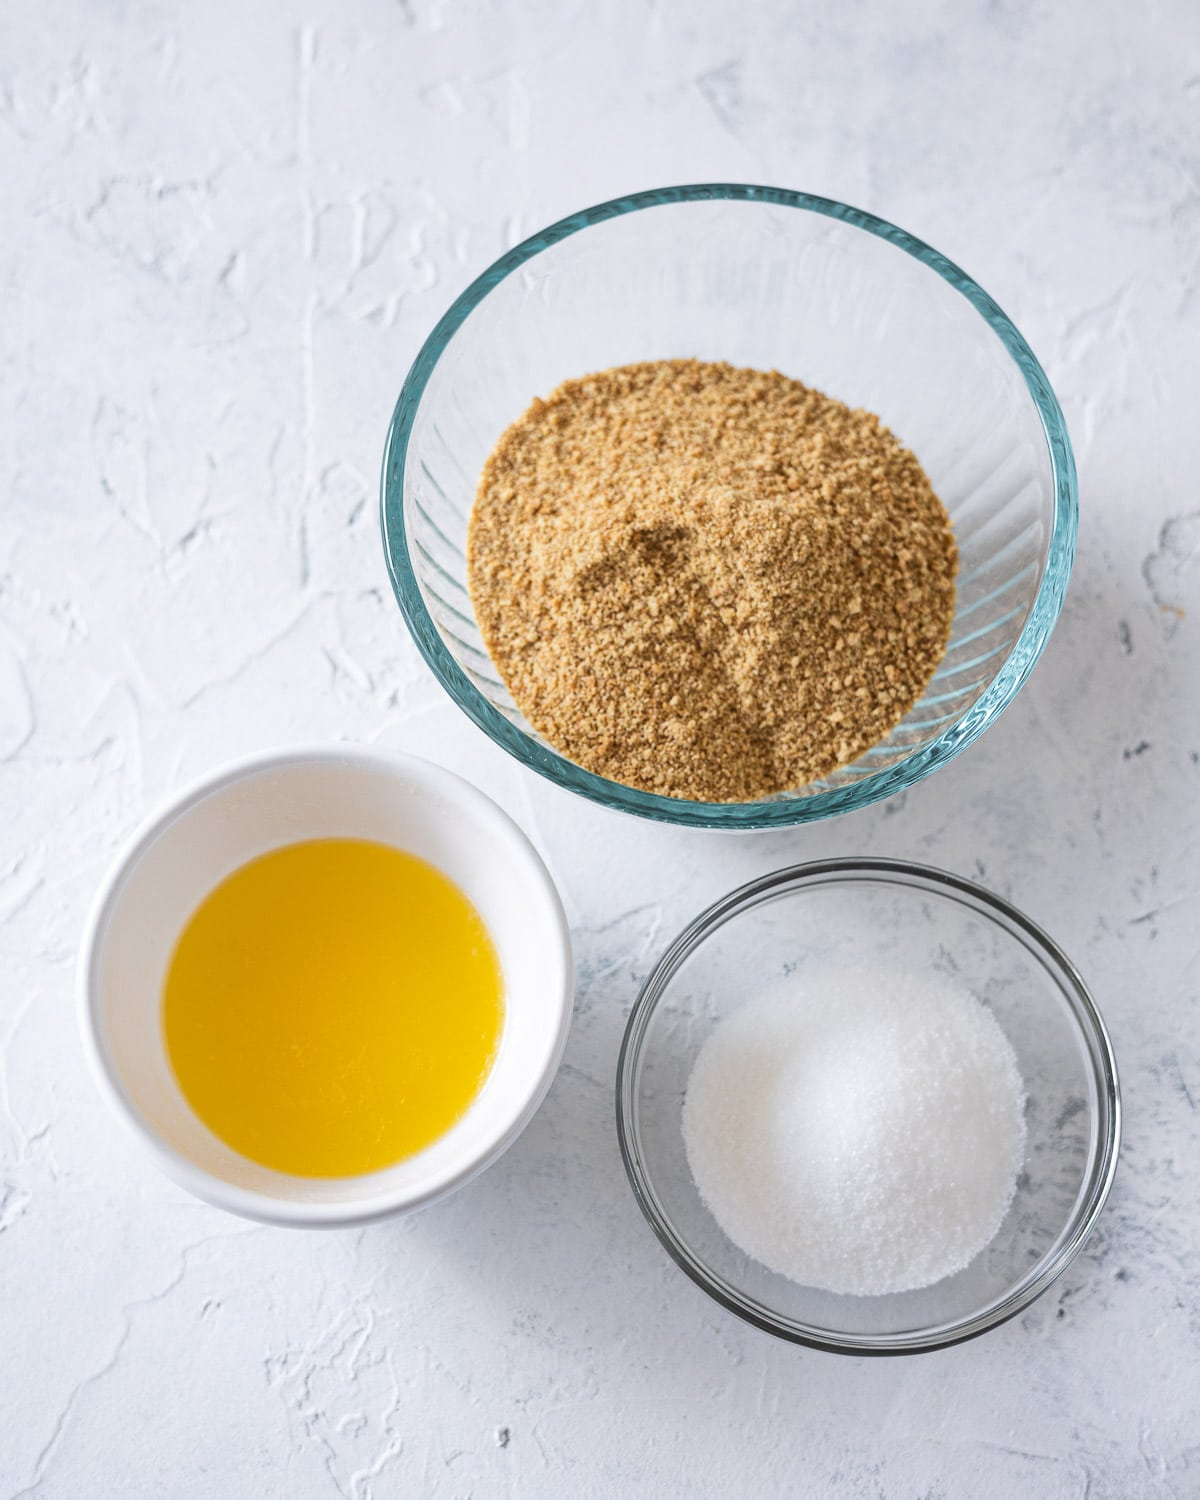 Three ingredients for graham cracker crust: graham cracker crumbs, melted butter, granulated sugar.